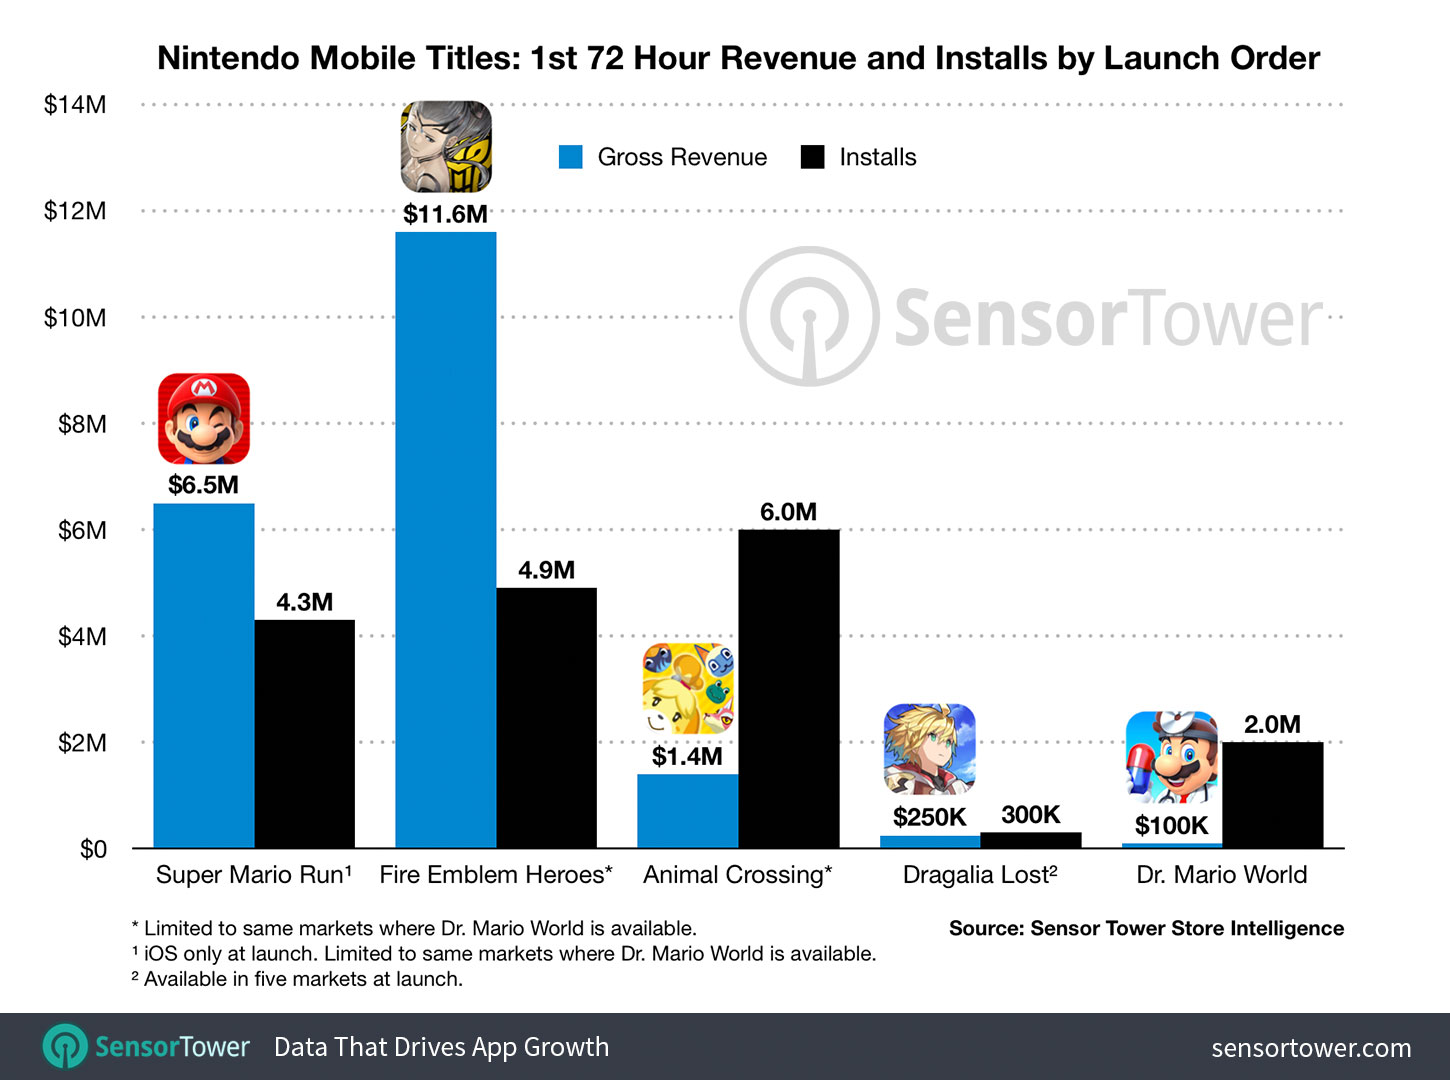 Dr. Mario World sees two million installs, $100,000 spent in first 72 hours